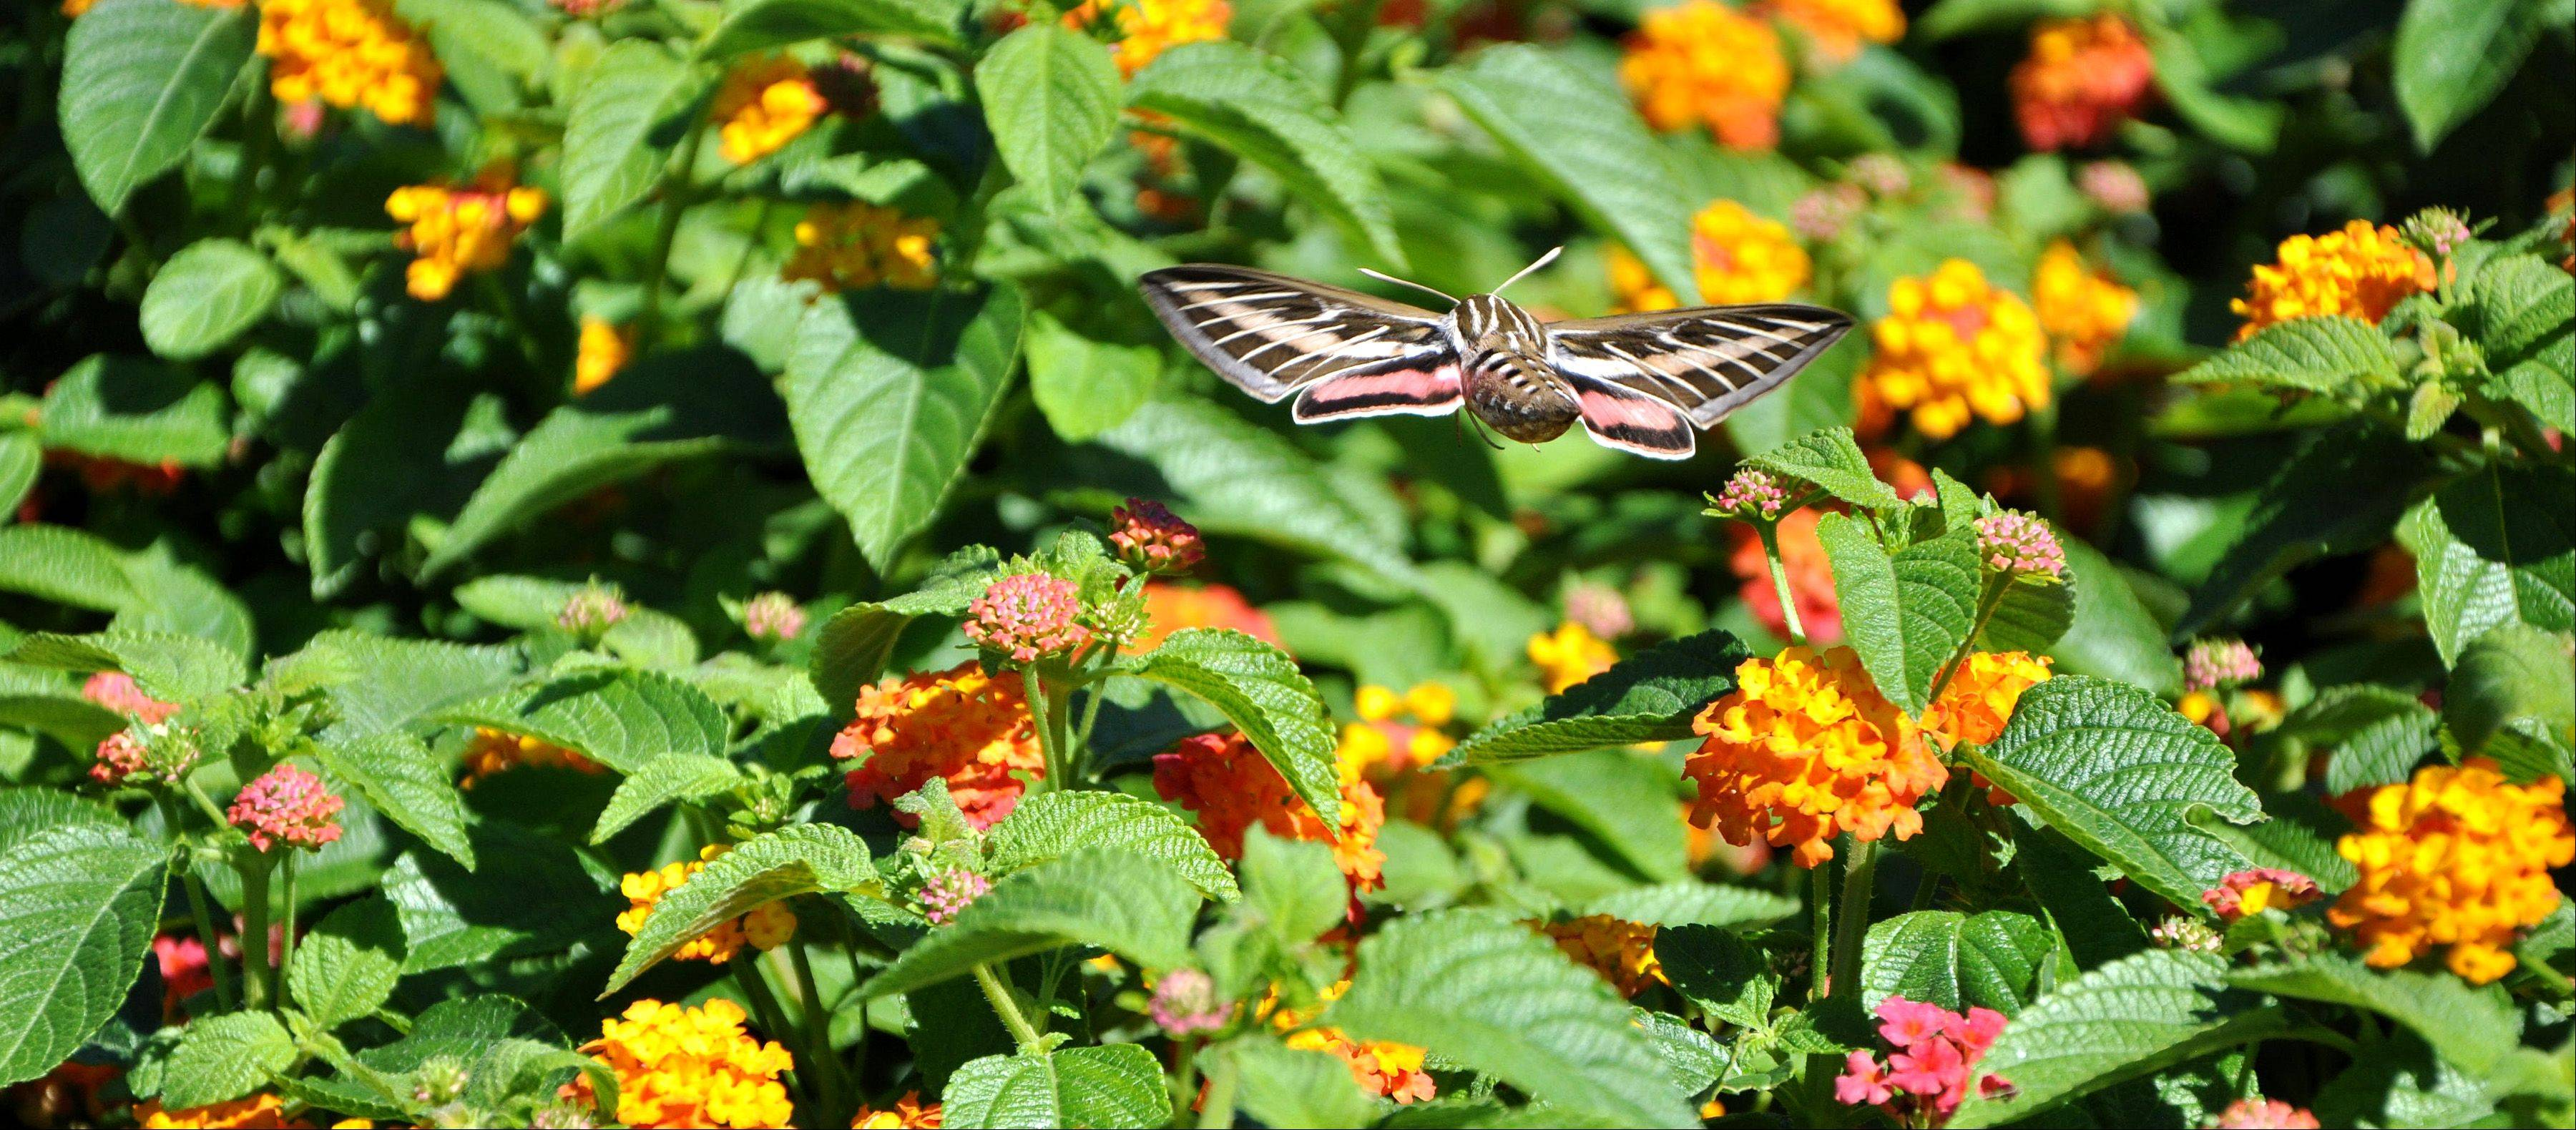 I spotted this Sphinx Hummingbird Moth as I was leaving Cantigny Gardens in Wheaton.